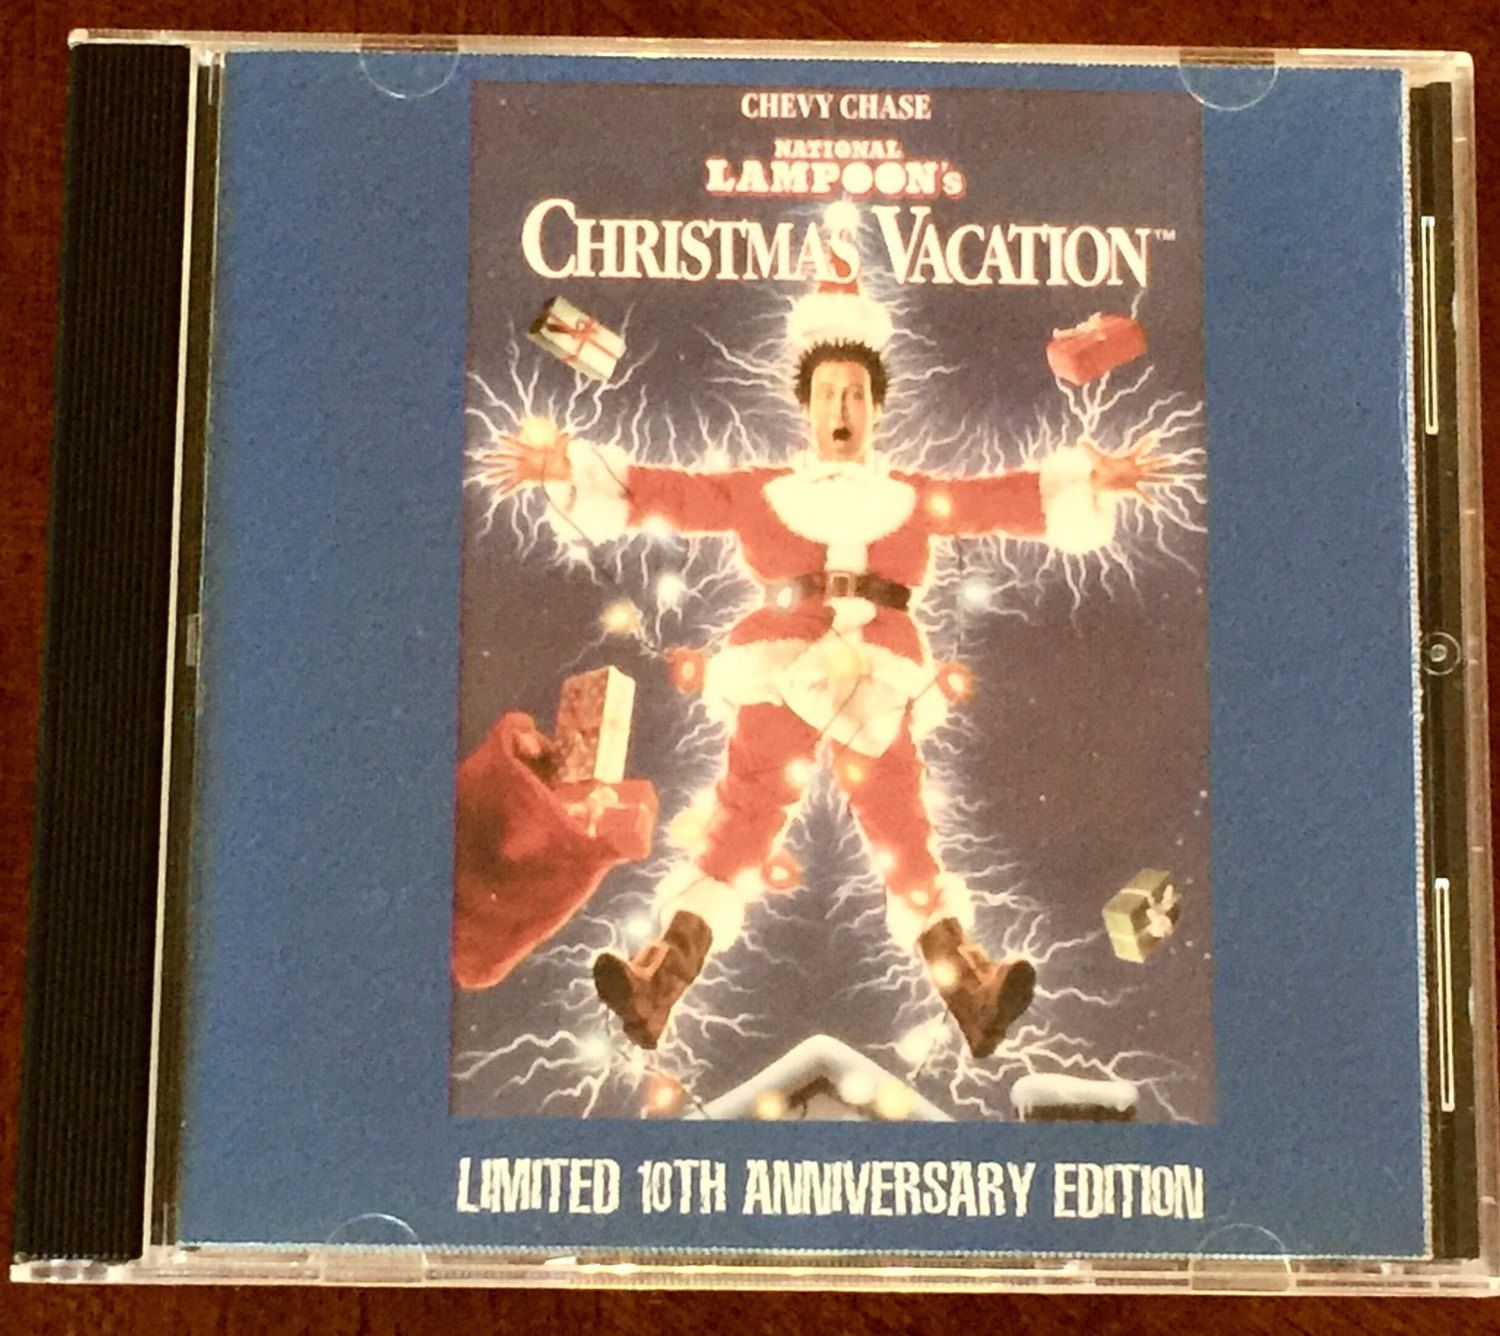 Christmas Vacation Soundtrack.Pin On Etsy Favorites